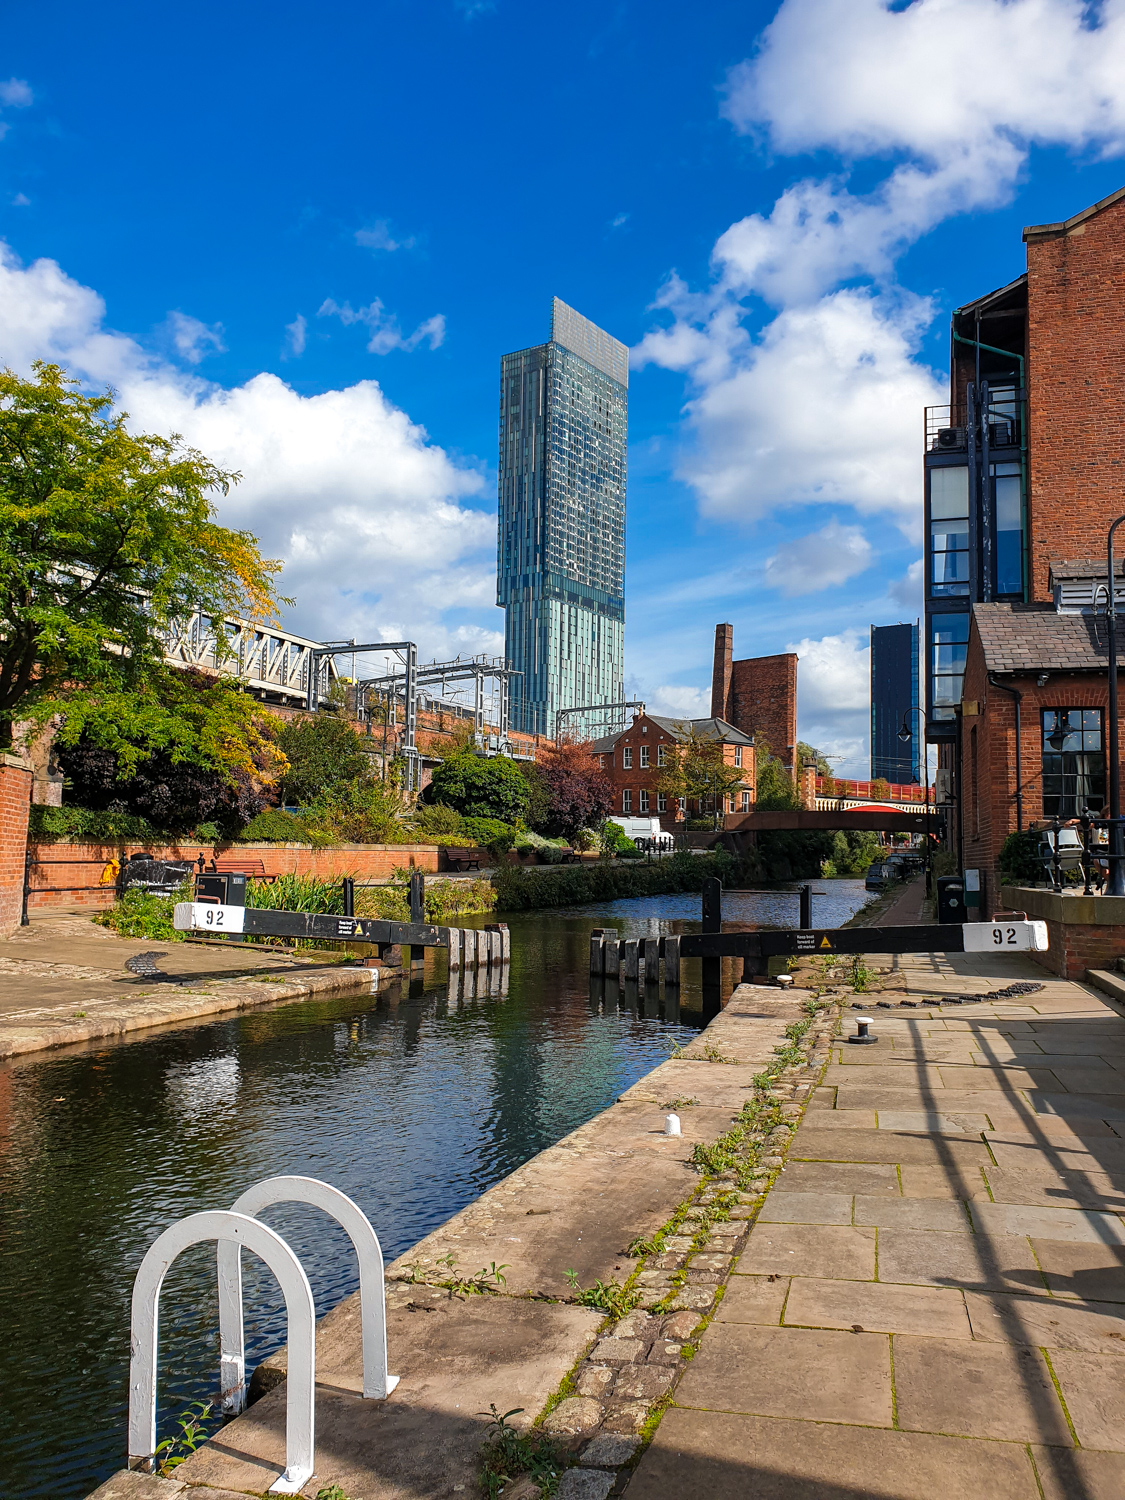 Manchester Castlefield with Beetham tower